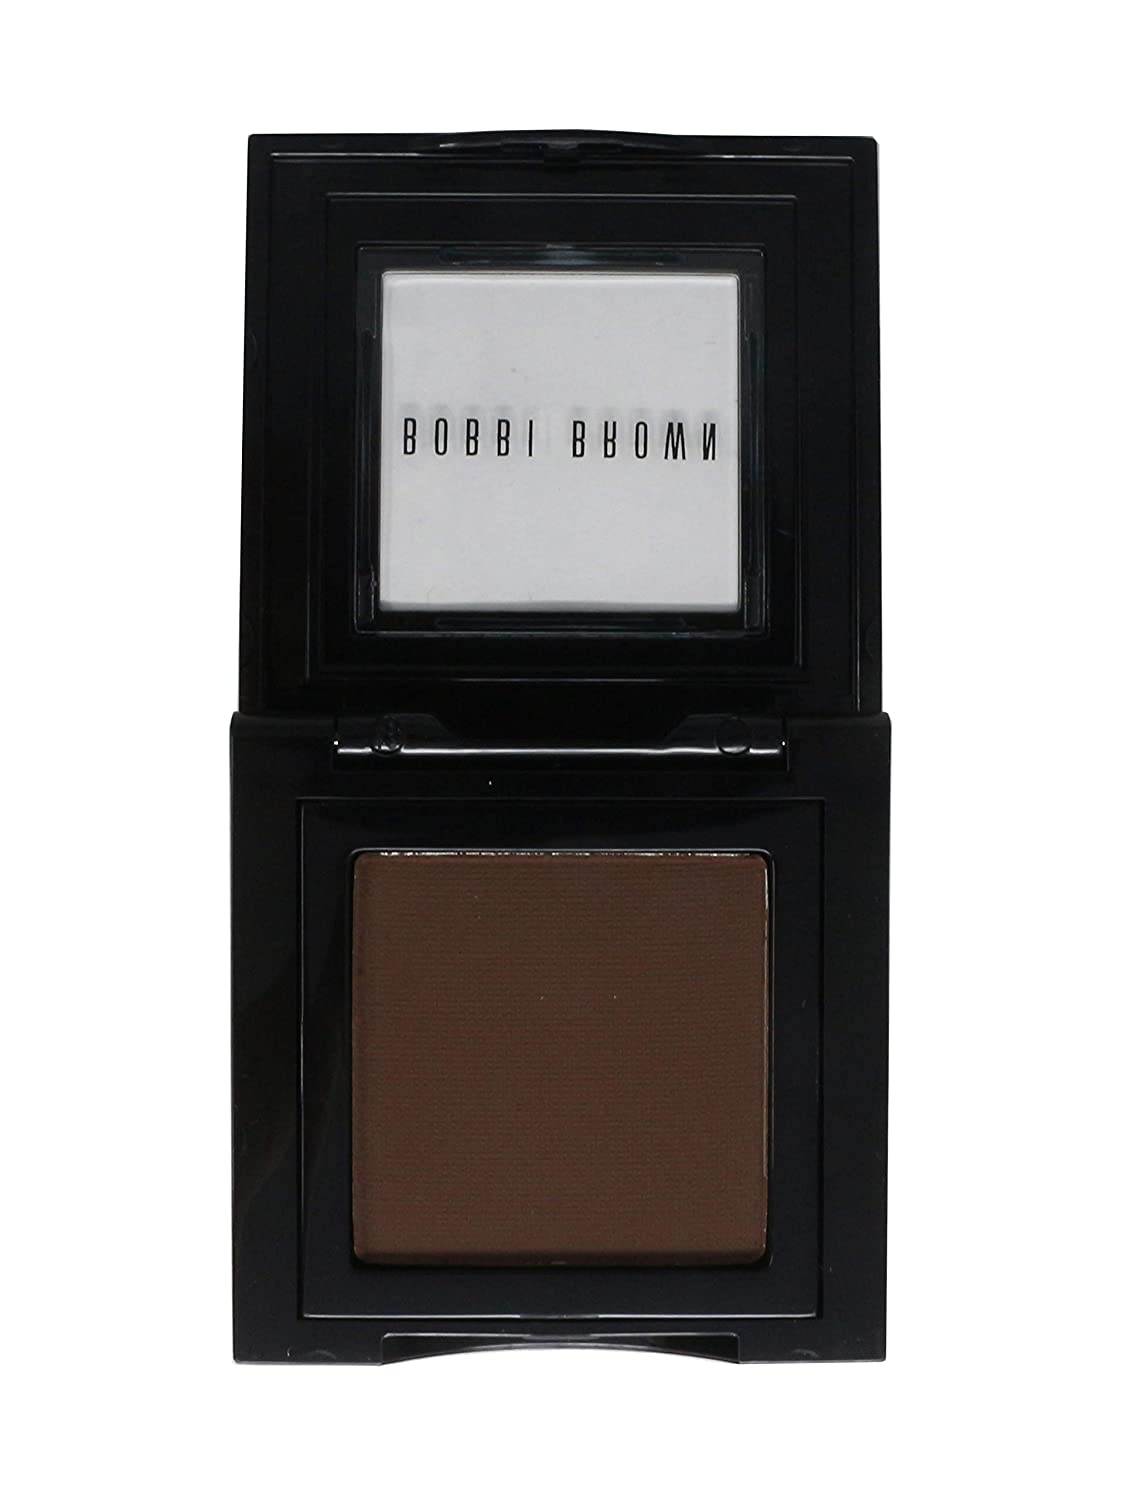 OFFicial mail order Bobbi Brown Eye Shadow Ounce Rich 11 specialty shop 0.08